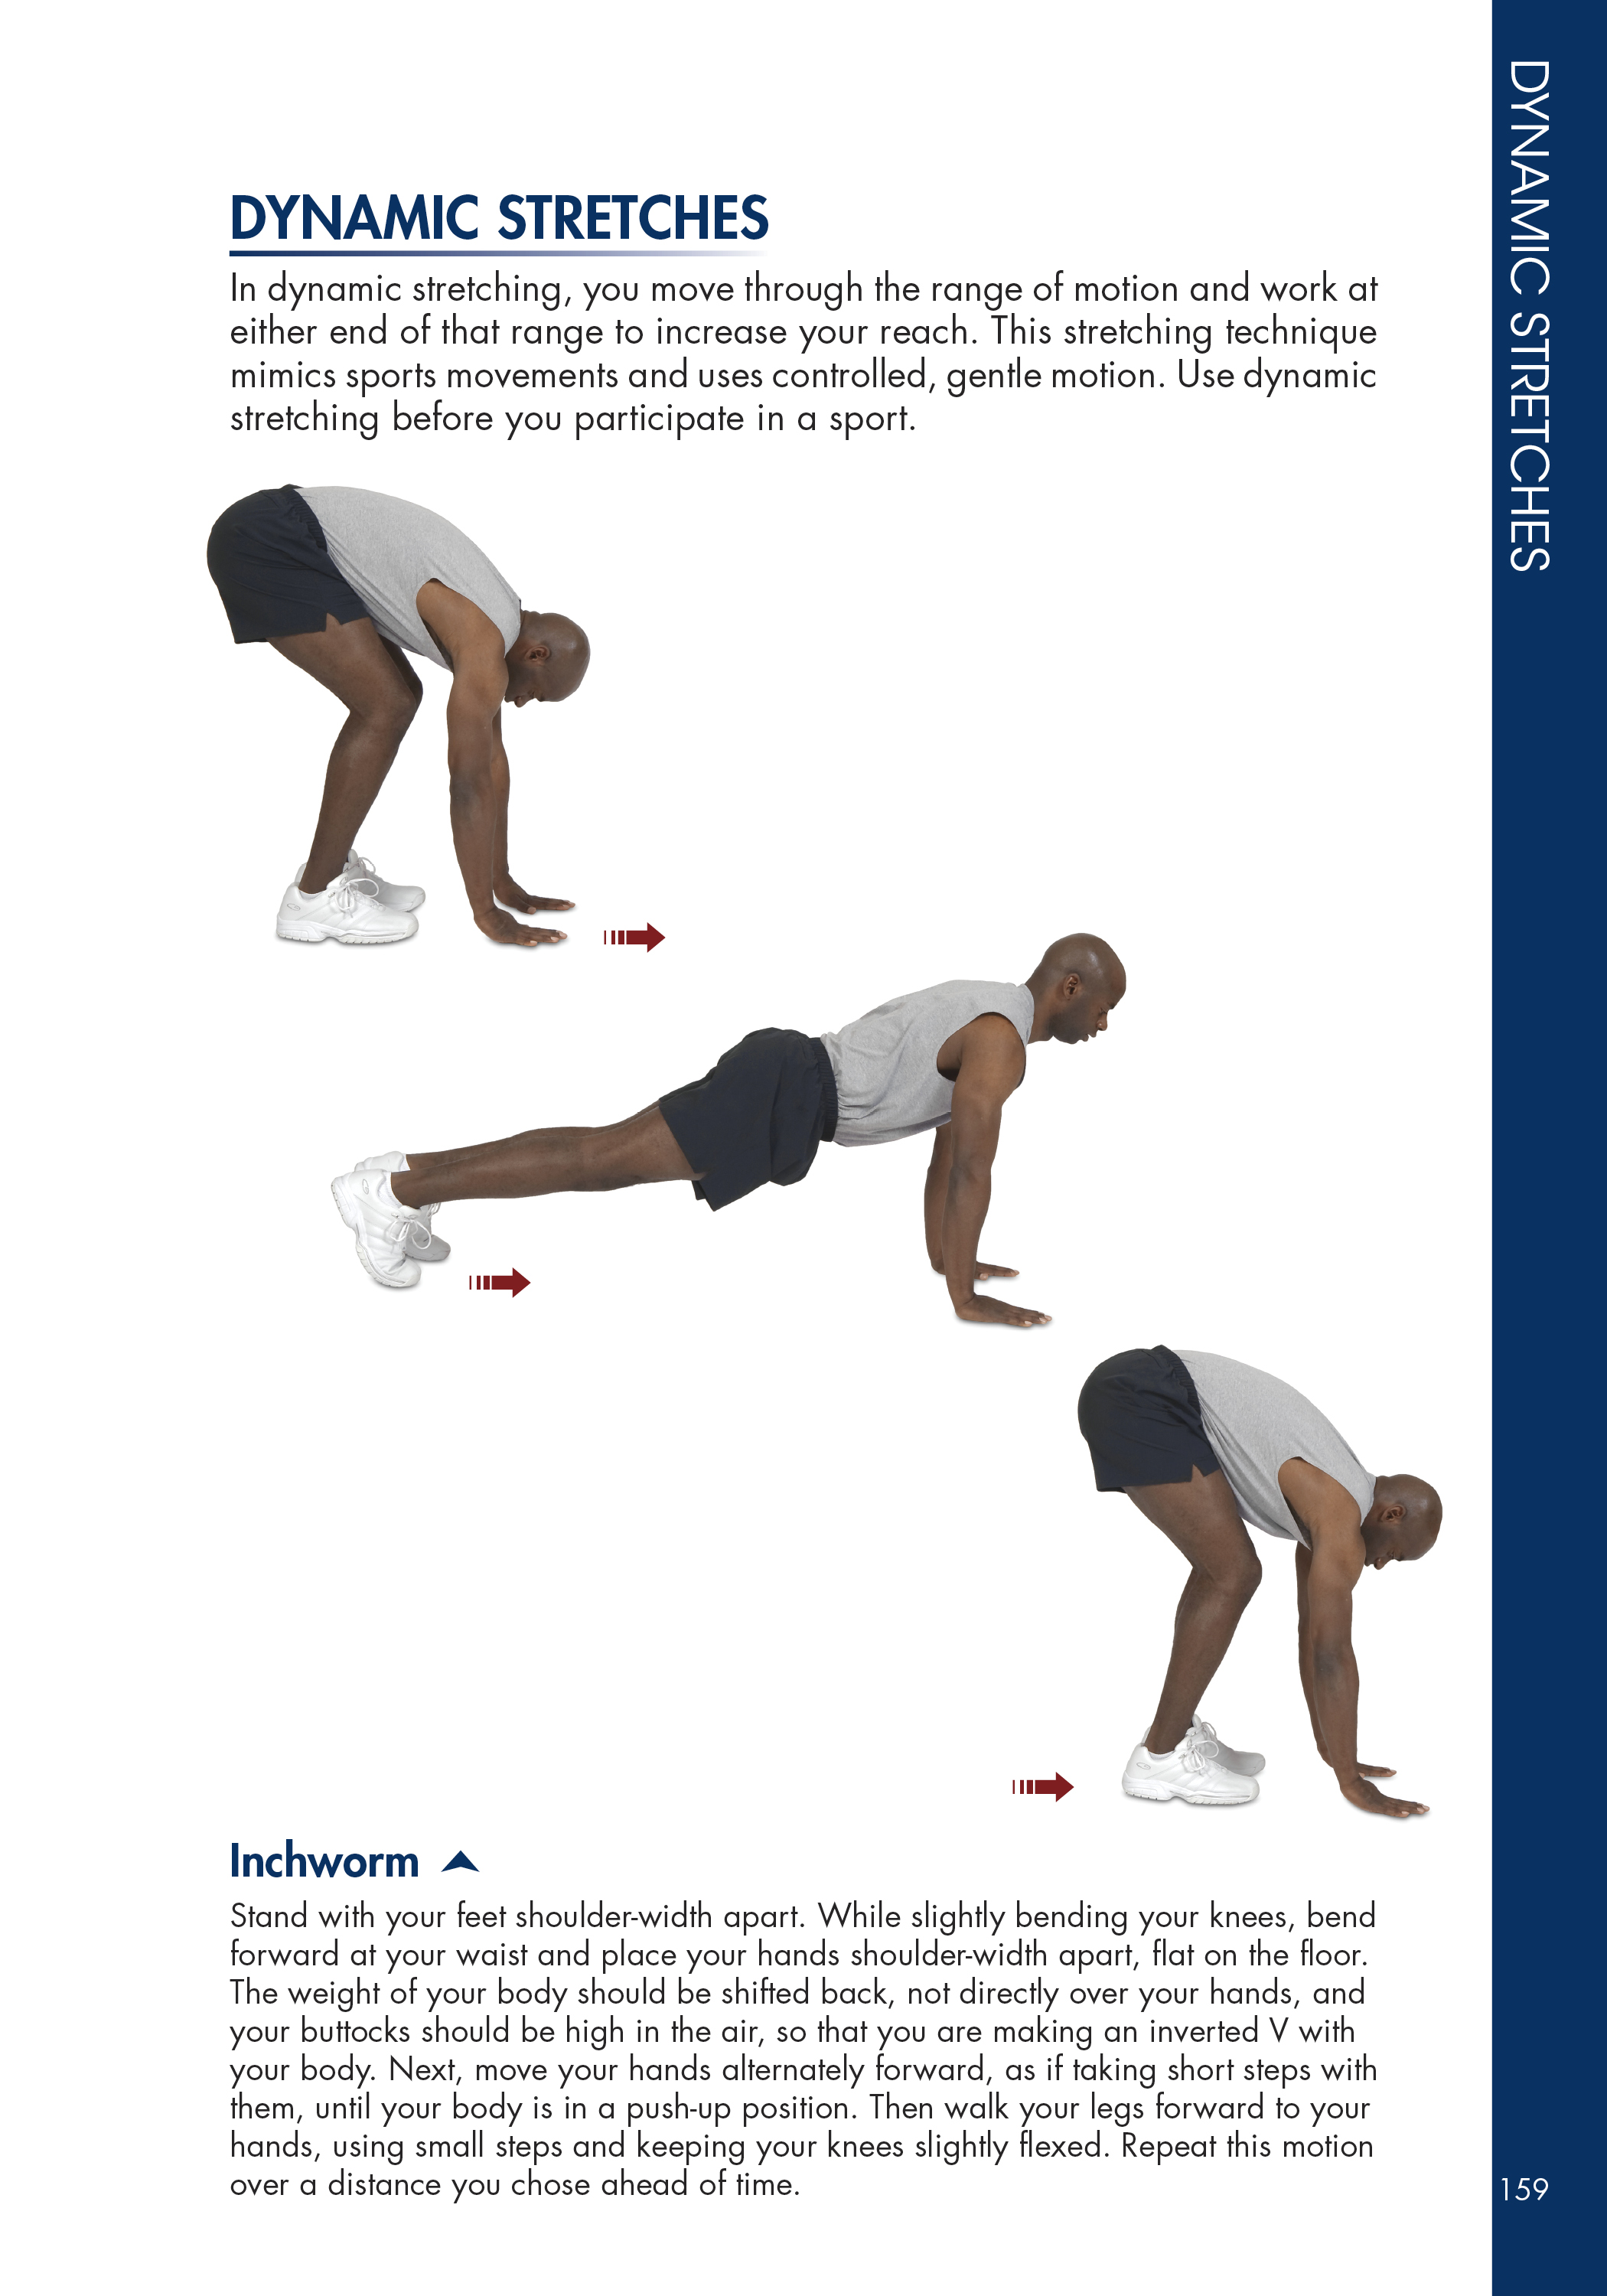 Dynamic stretches